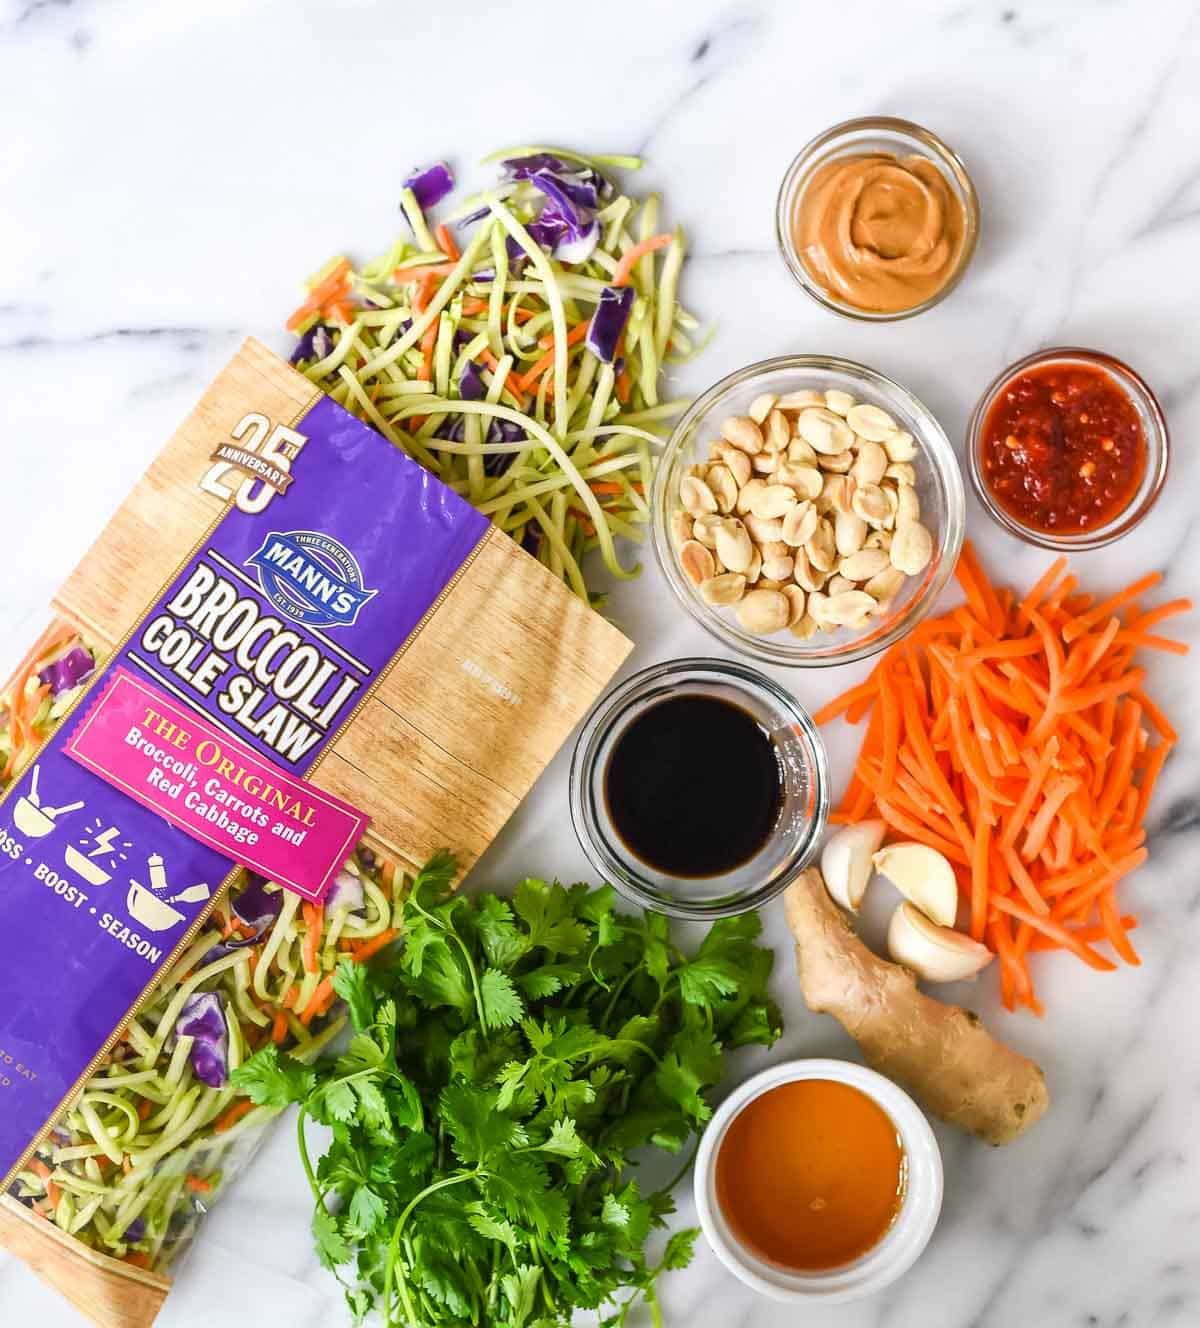 Our family LOVED this Asian Noodle Salad. Whole wheat pasta, crunchy veggies, and peanuts, topped with an irresistible creamy peanut dressing. My new go-to cold pasta salad! @wellplated